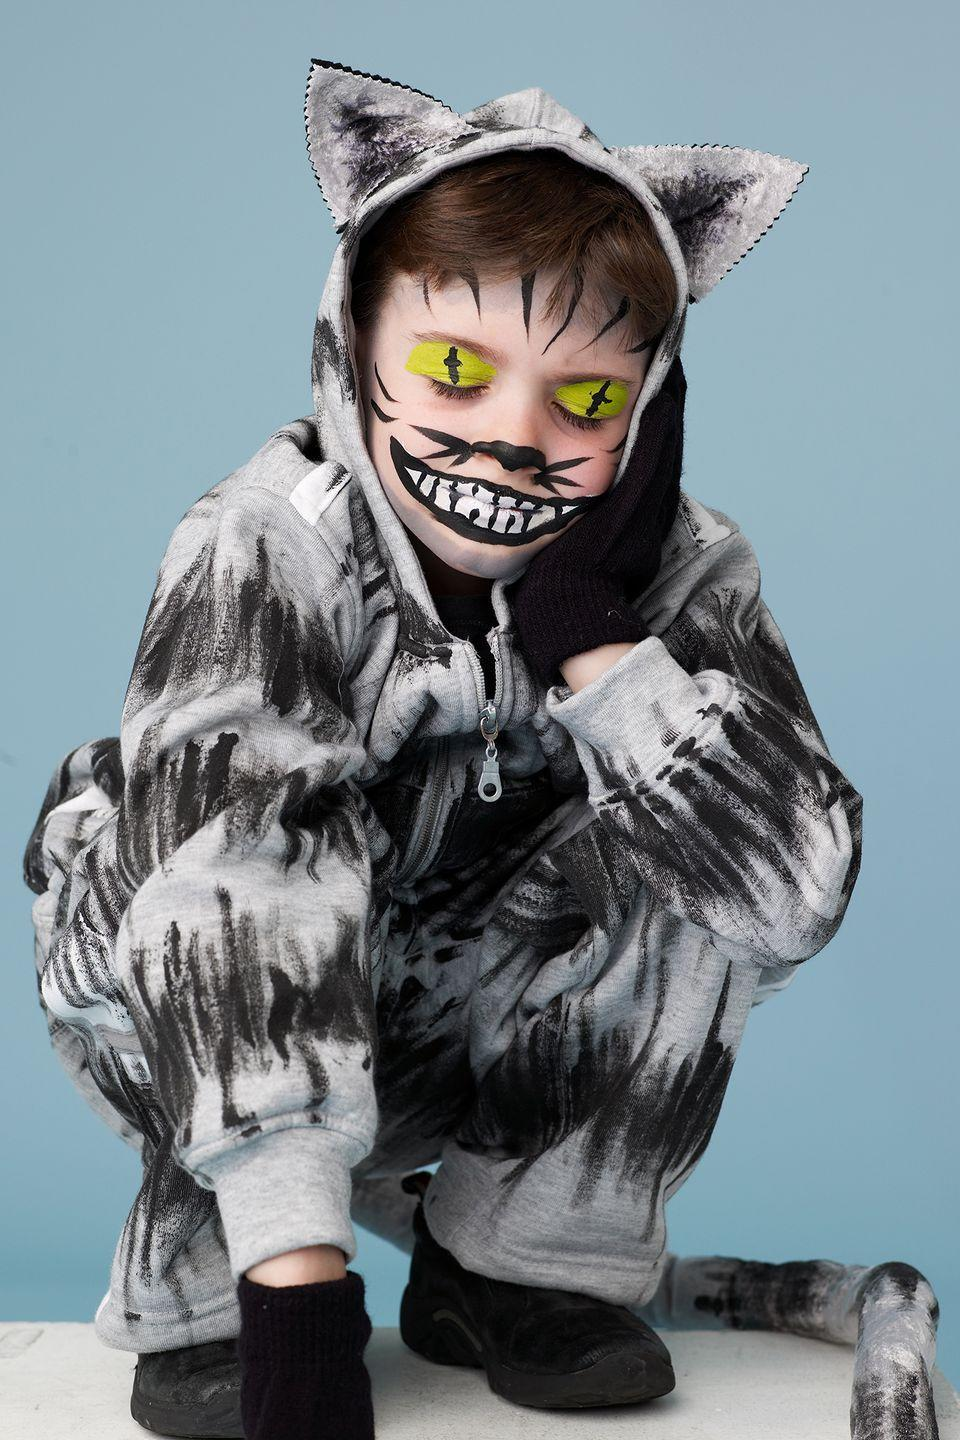 """<p>Black paint will turn a grey sweatsuit into the<em> purrr</em>-fect <em>Alice in Wonderland</em> costume. Add a few extra feline touches, like felt ears and gloved paws, as a finishing touch.</p><p><a href=""""https://www.womansday.com/home/crafts-projects/how-to/a8637/halloween-costume-how-to-cheshire-cat-110888/"""" rel=""""nofollow noopener"""" target=""""_blank"""" data-ylk=""""slk:Get the Cheshire Cat tutorial."""" class=""""link rapid-noclick-resp""""><strong><em>Get the Cheshire Cat tutorial.</em></strong></a></p>"""